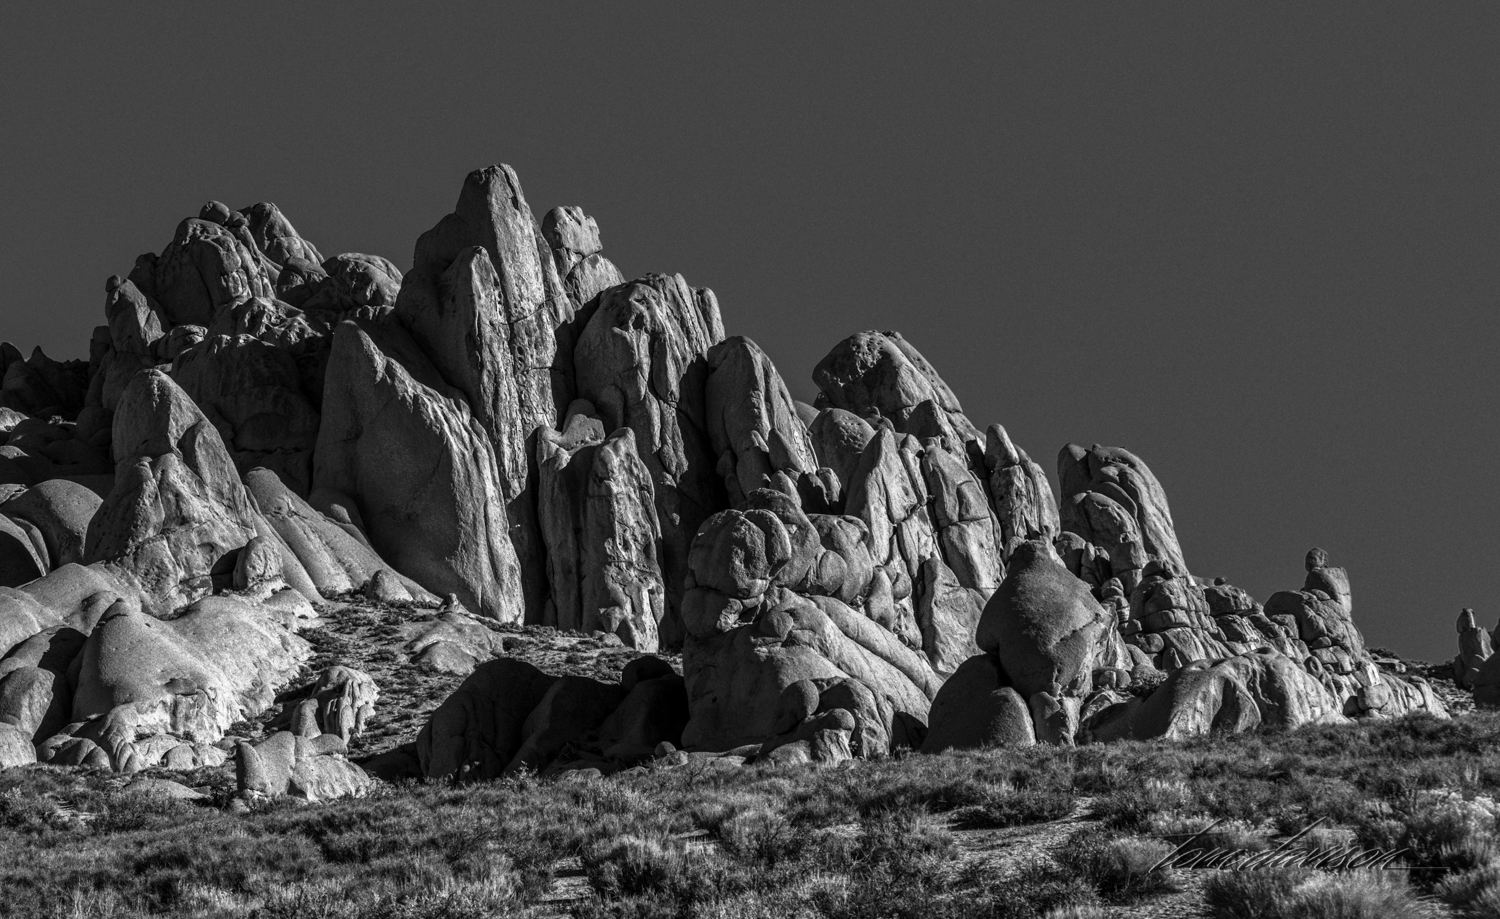 Buttermilk-2.jpg